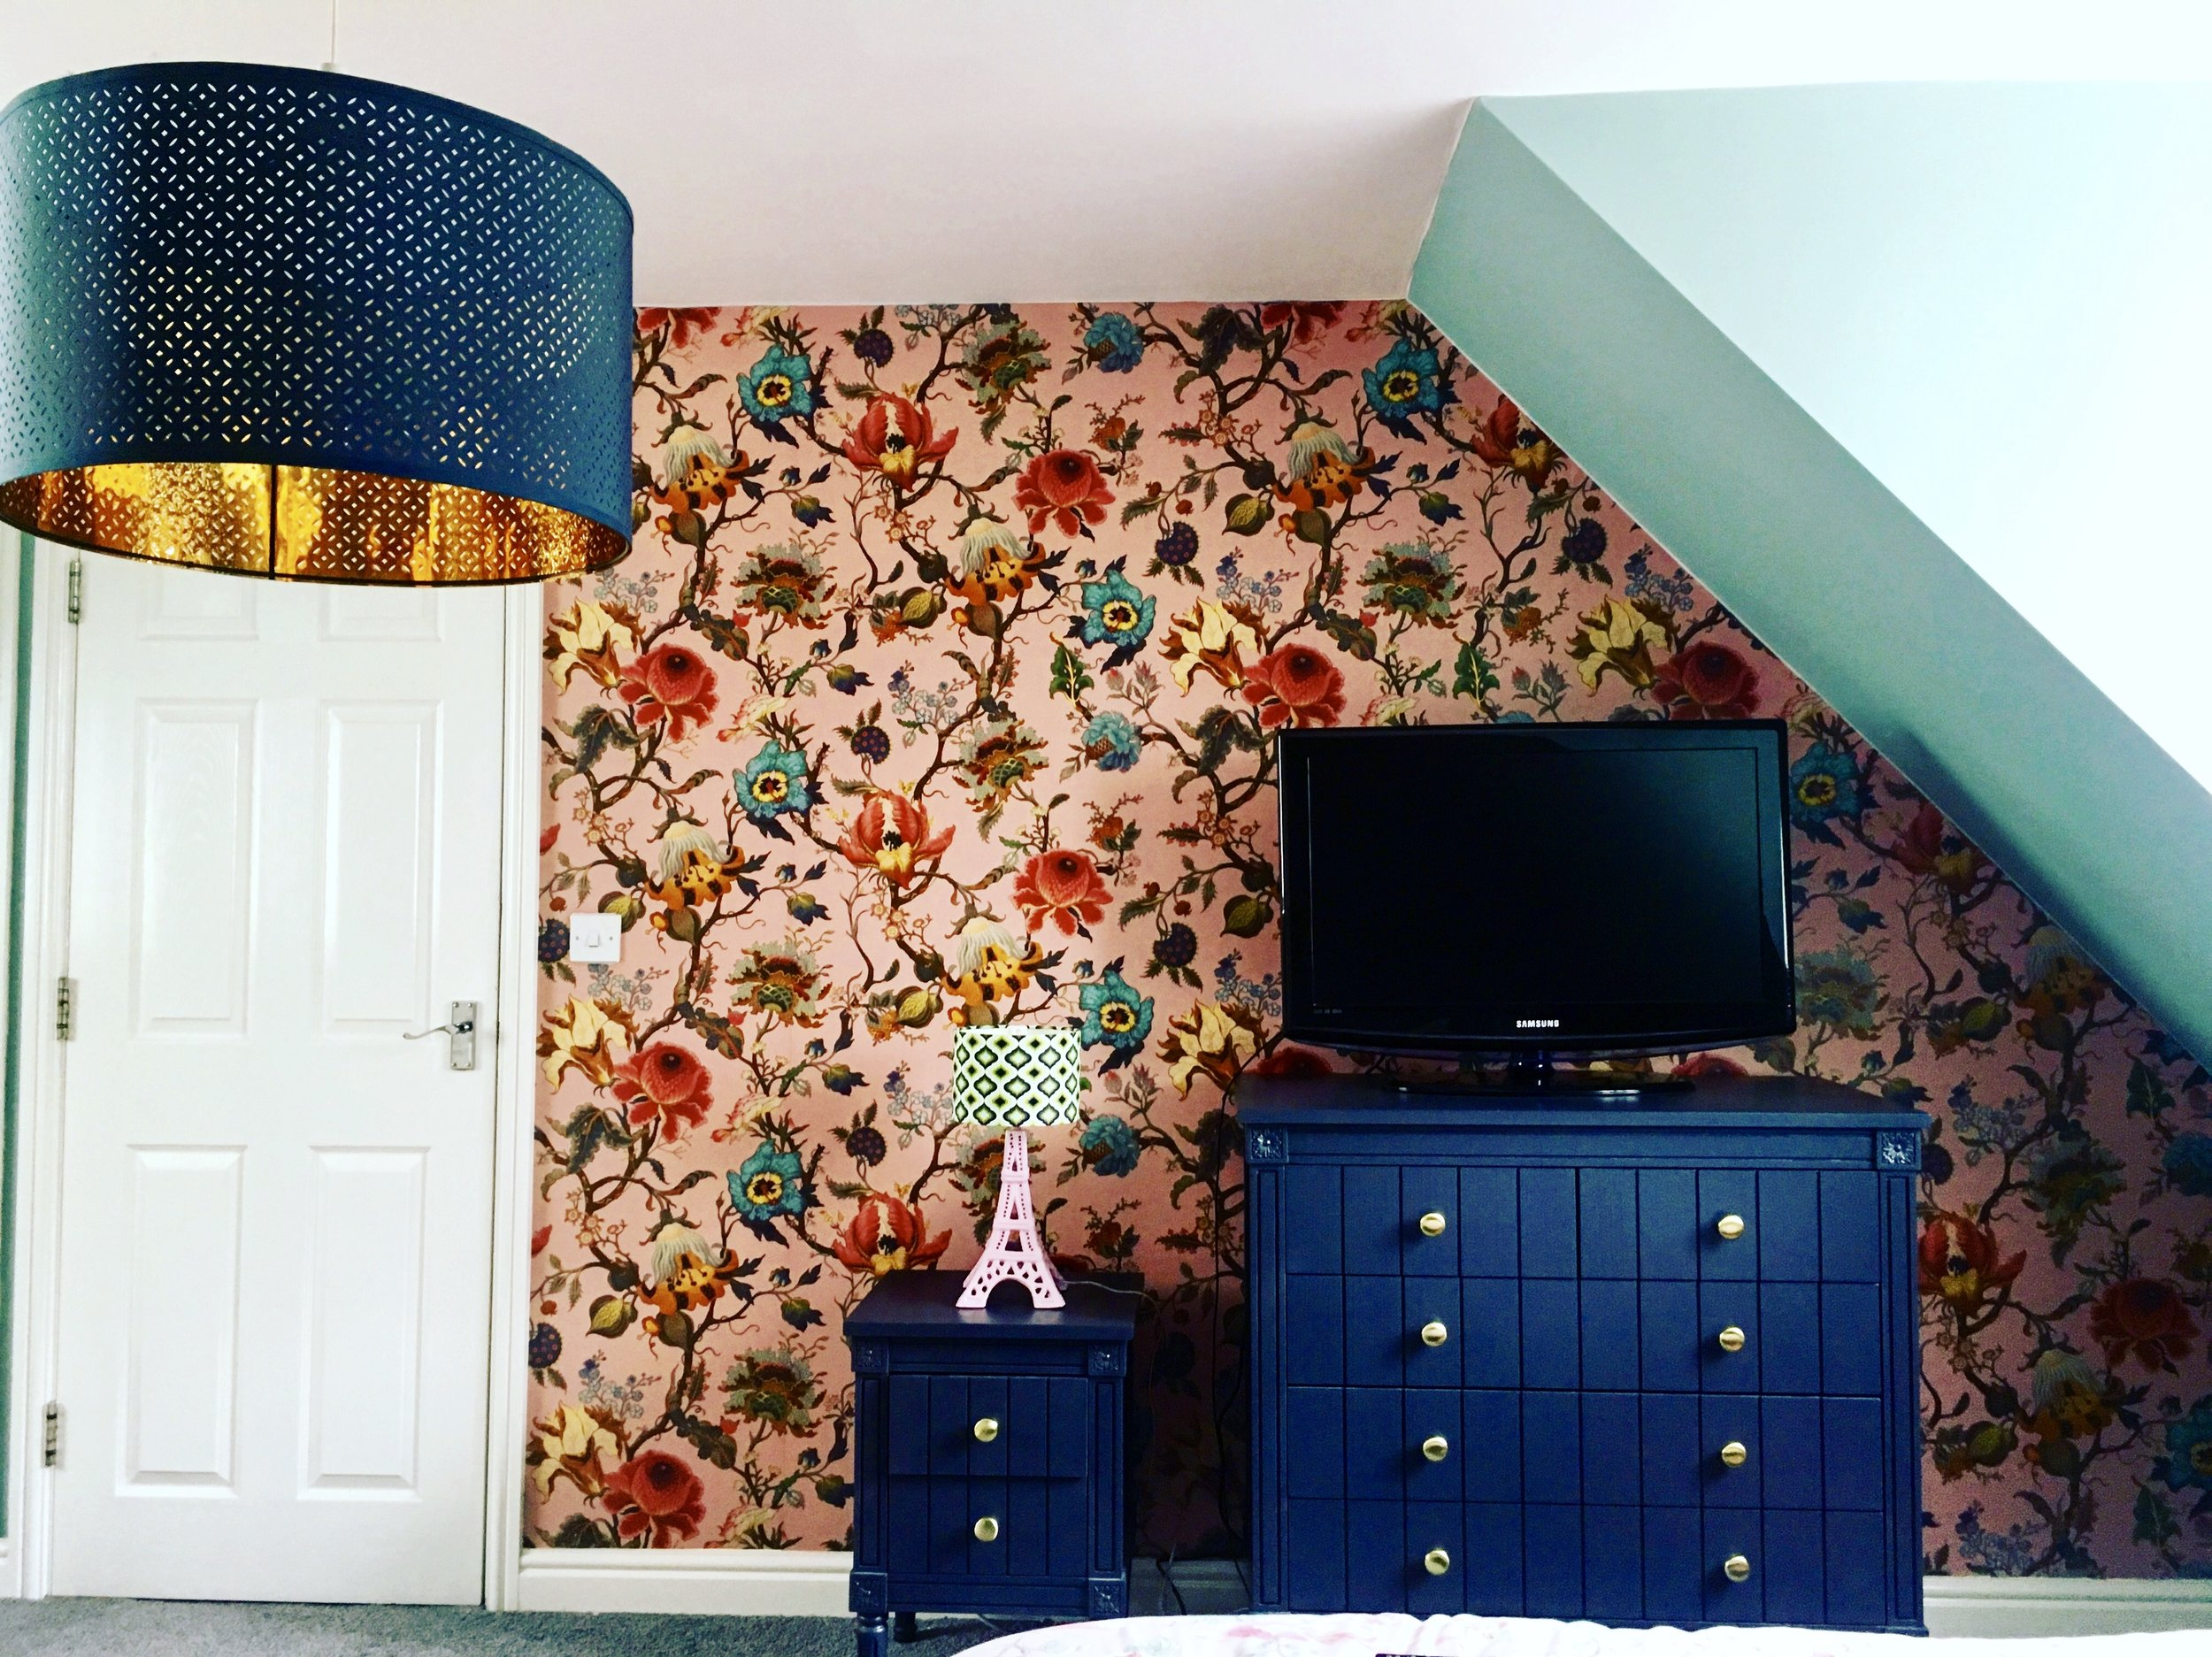 Bedroom: Wallpaper - Artemis - House of Hackney Wall paint - Dix Blue Farrow and Ball  Furniture - Made.com Eifel Tower lamp - Rose Lee Interiors  Ceiling Lampshade - Ikea